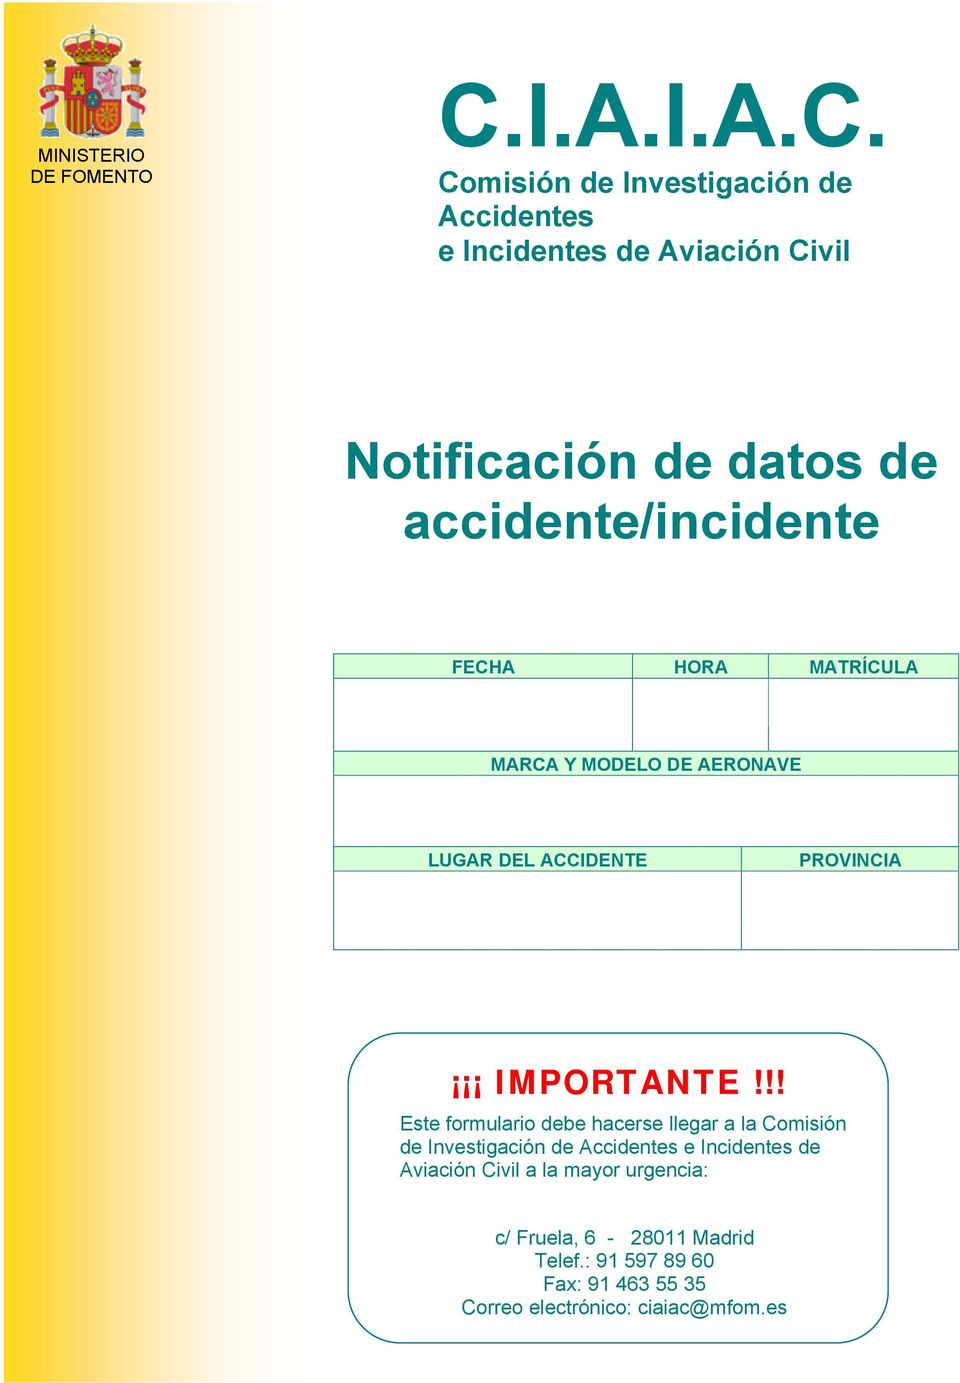 Comisión de Investigación de Accidentes e Incidentes de Aviación Civil Notificación de accidente/incidente